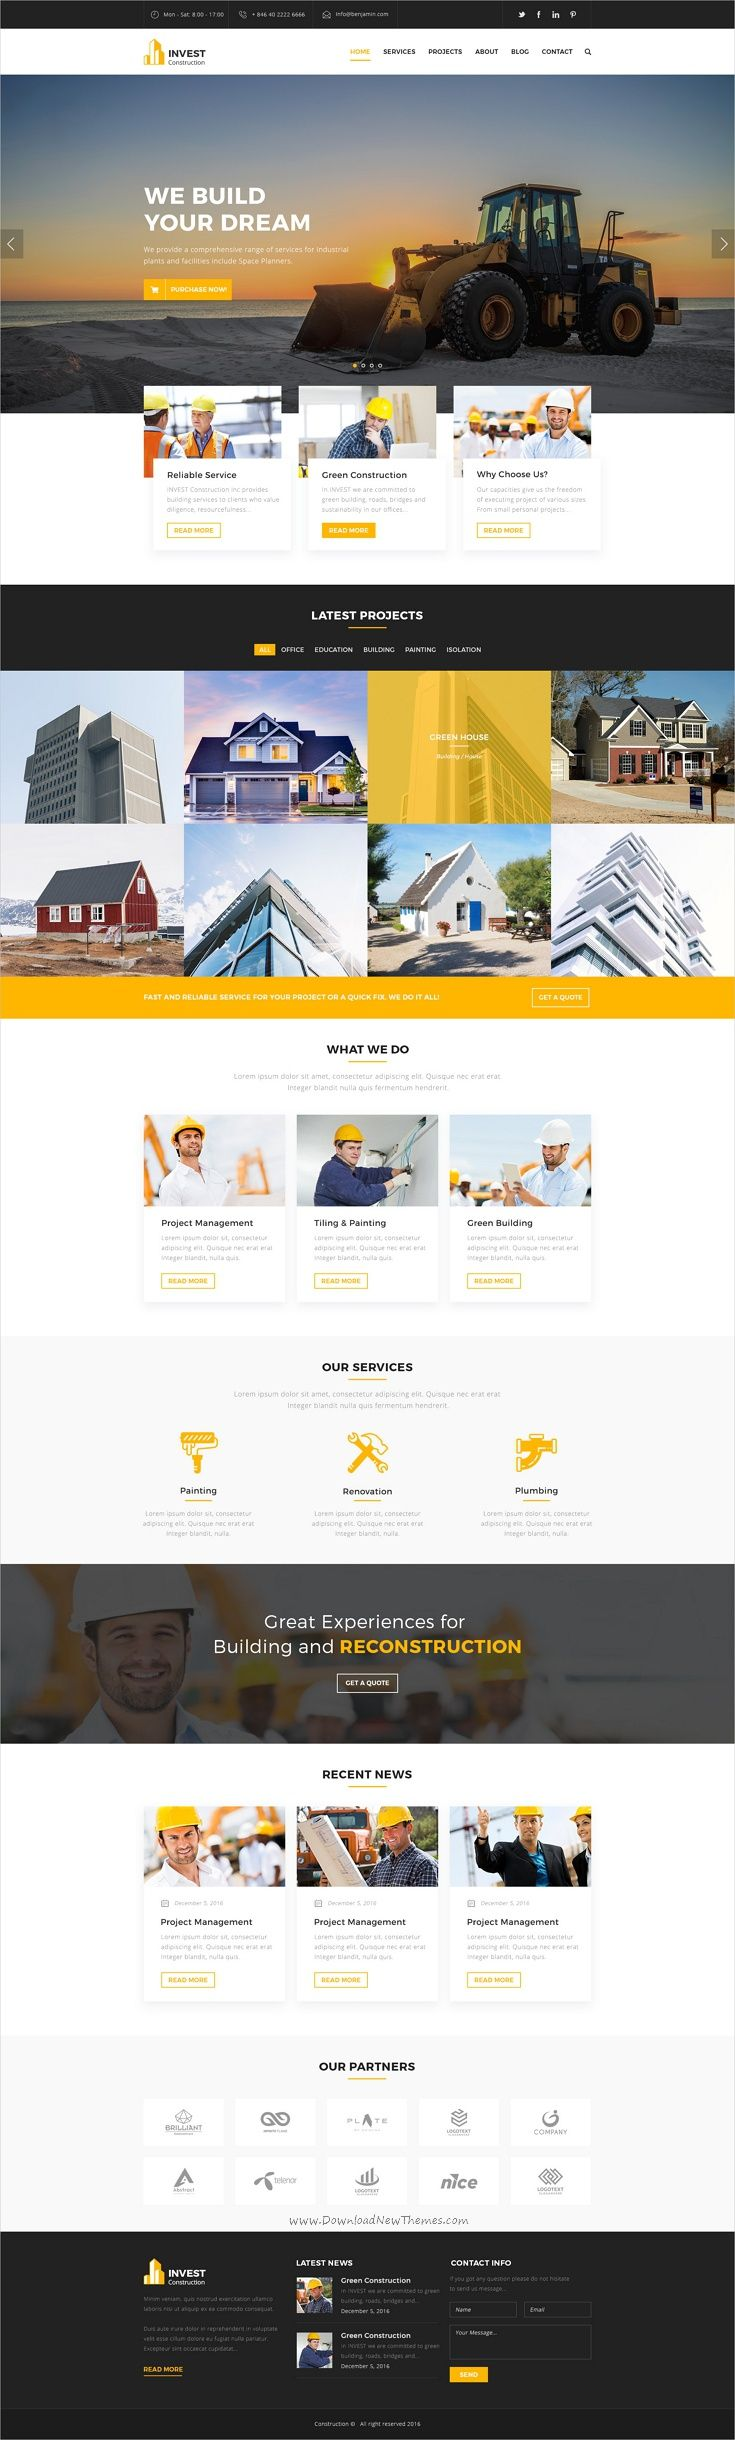 Invest is a wonderful 2in1 #Photoshop template for #construction and #architecture companies website download now➩ https://themeforest.net/item/invest-construction-psd-template/19272348?ref=Datasata